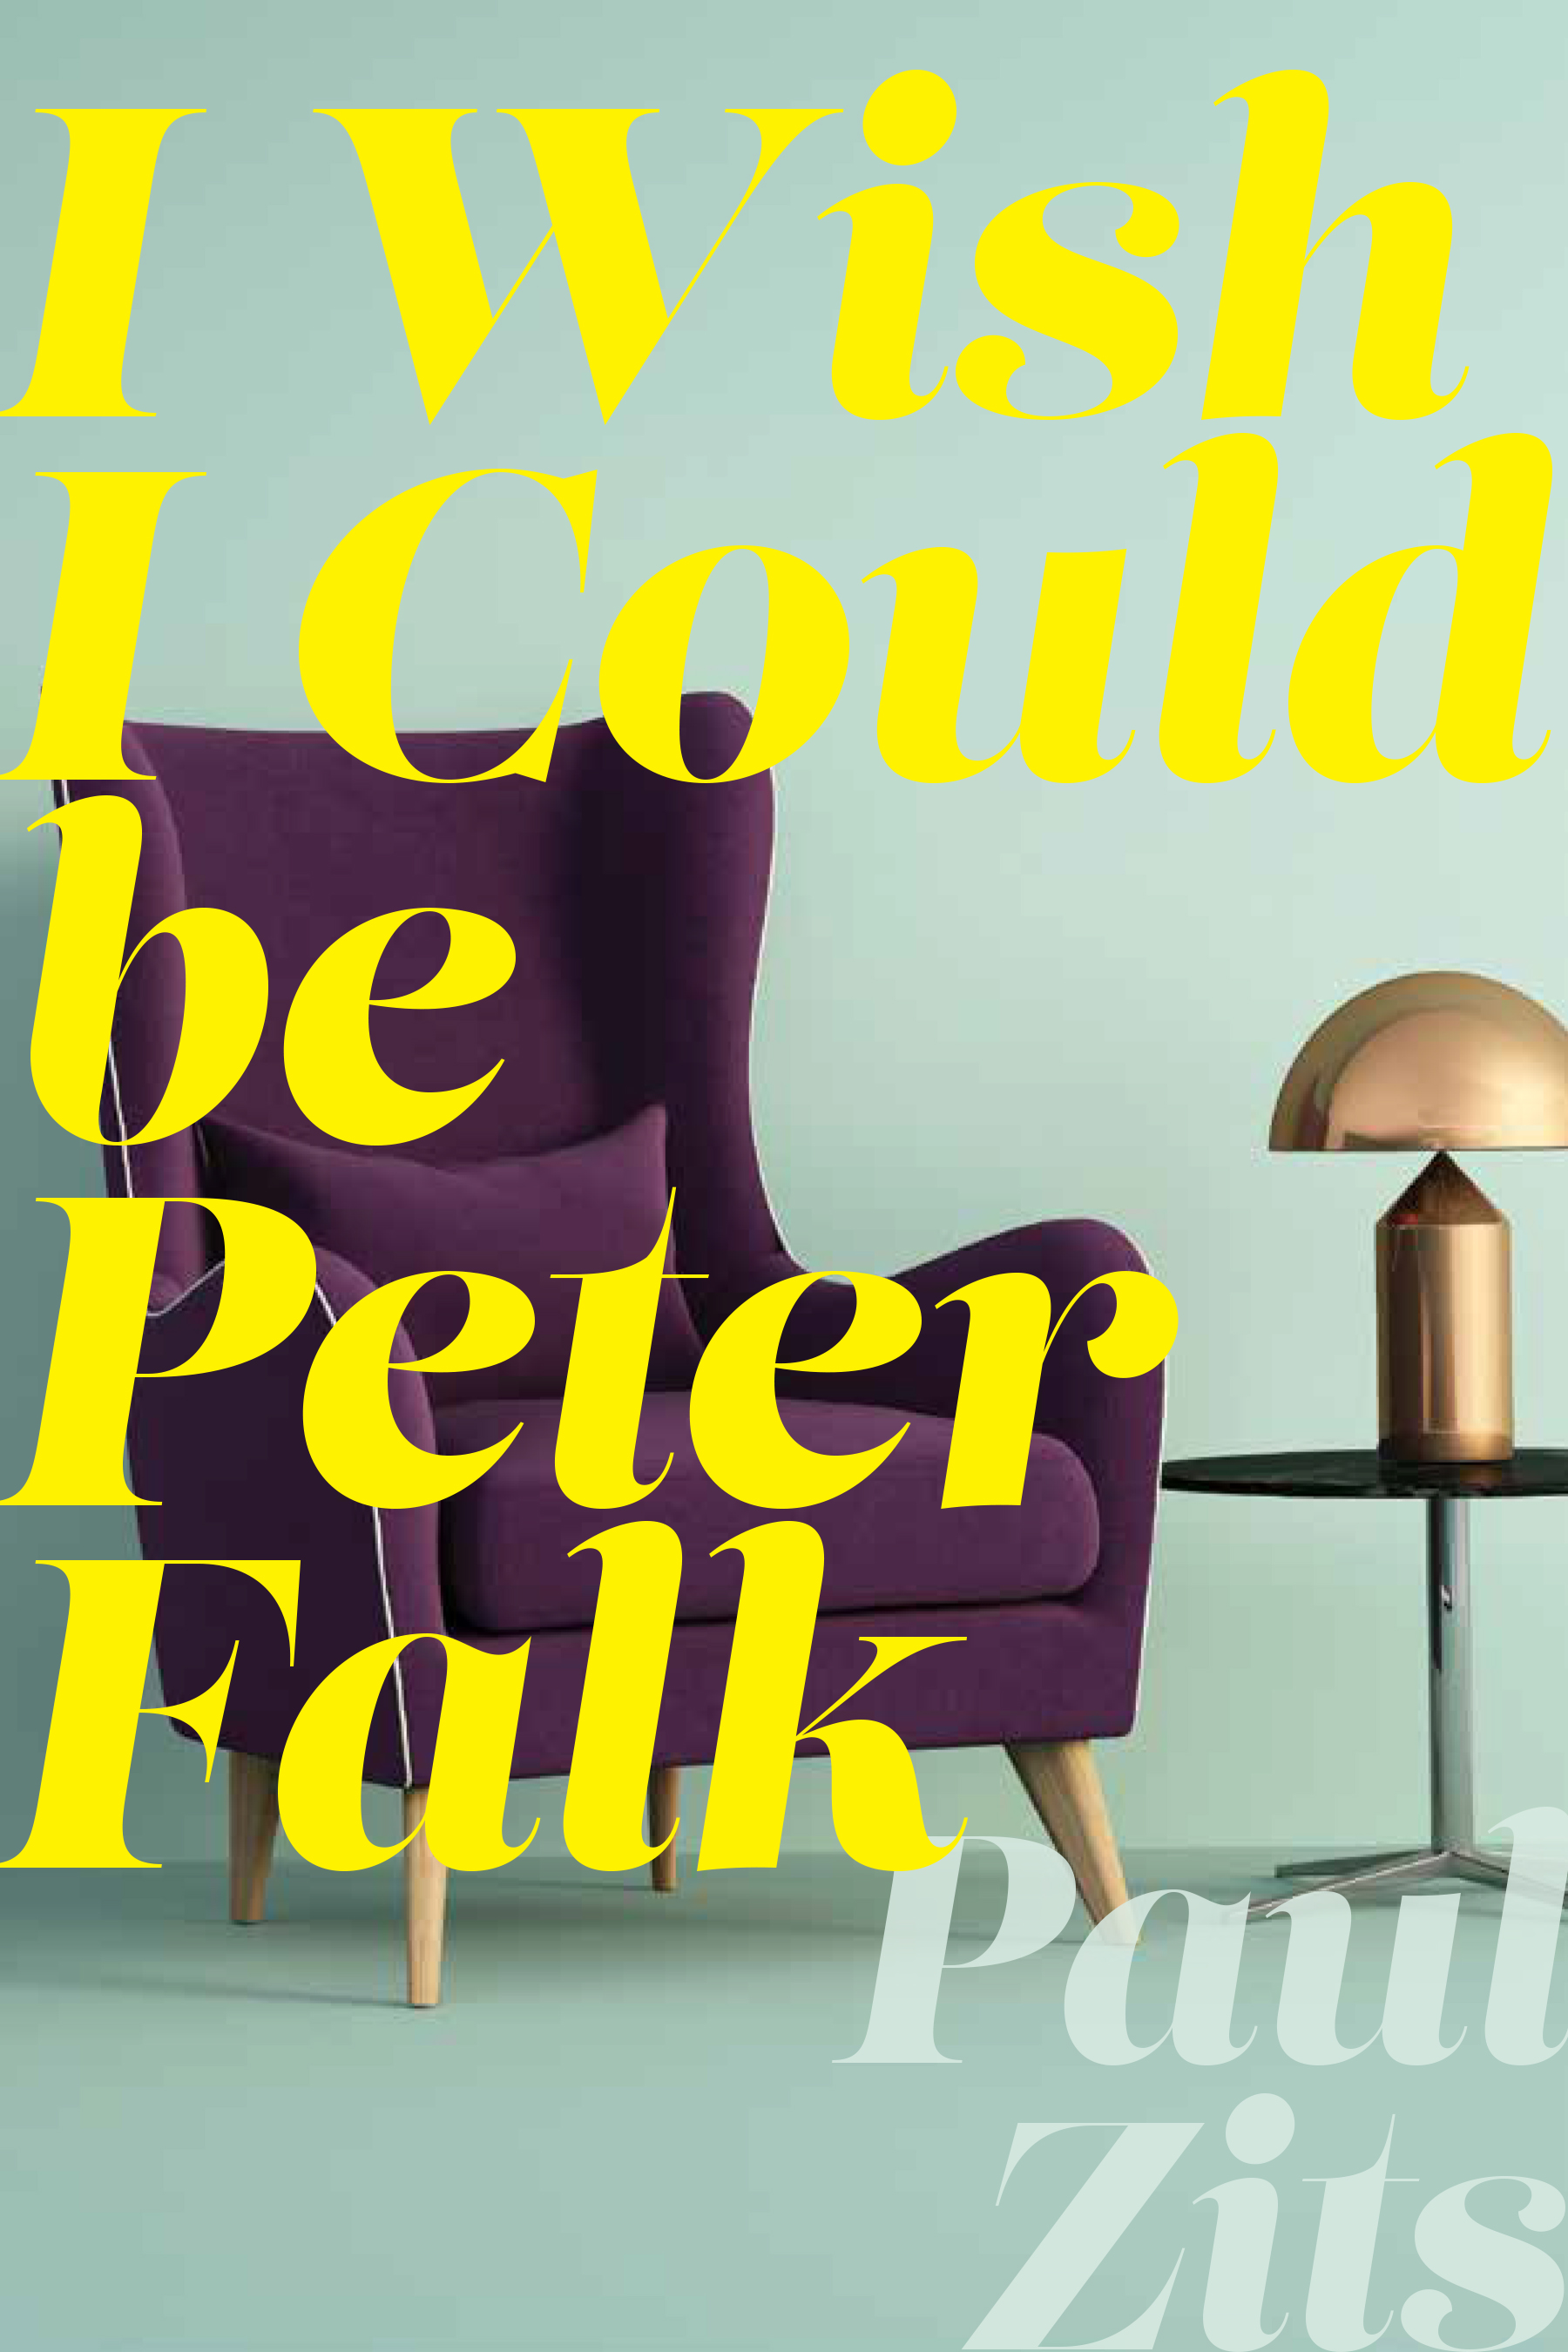 Book Cover Image for: I Wish I Could Be Peter Falk